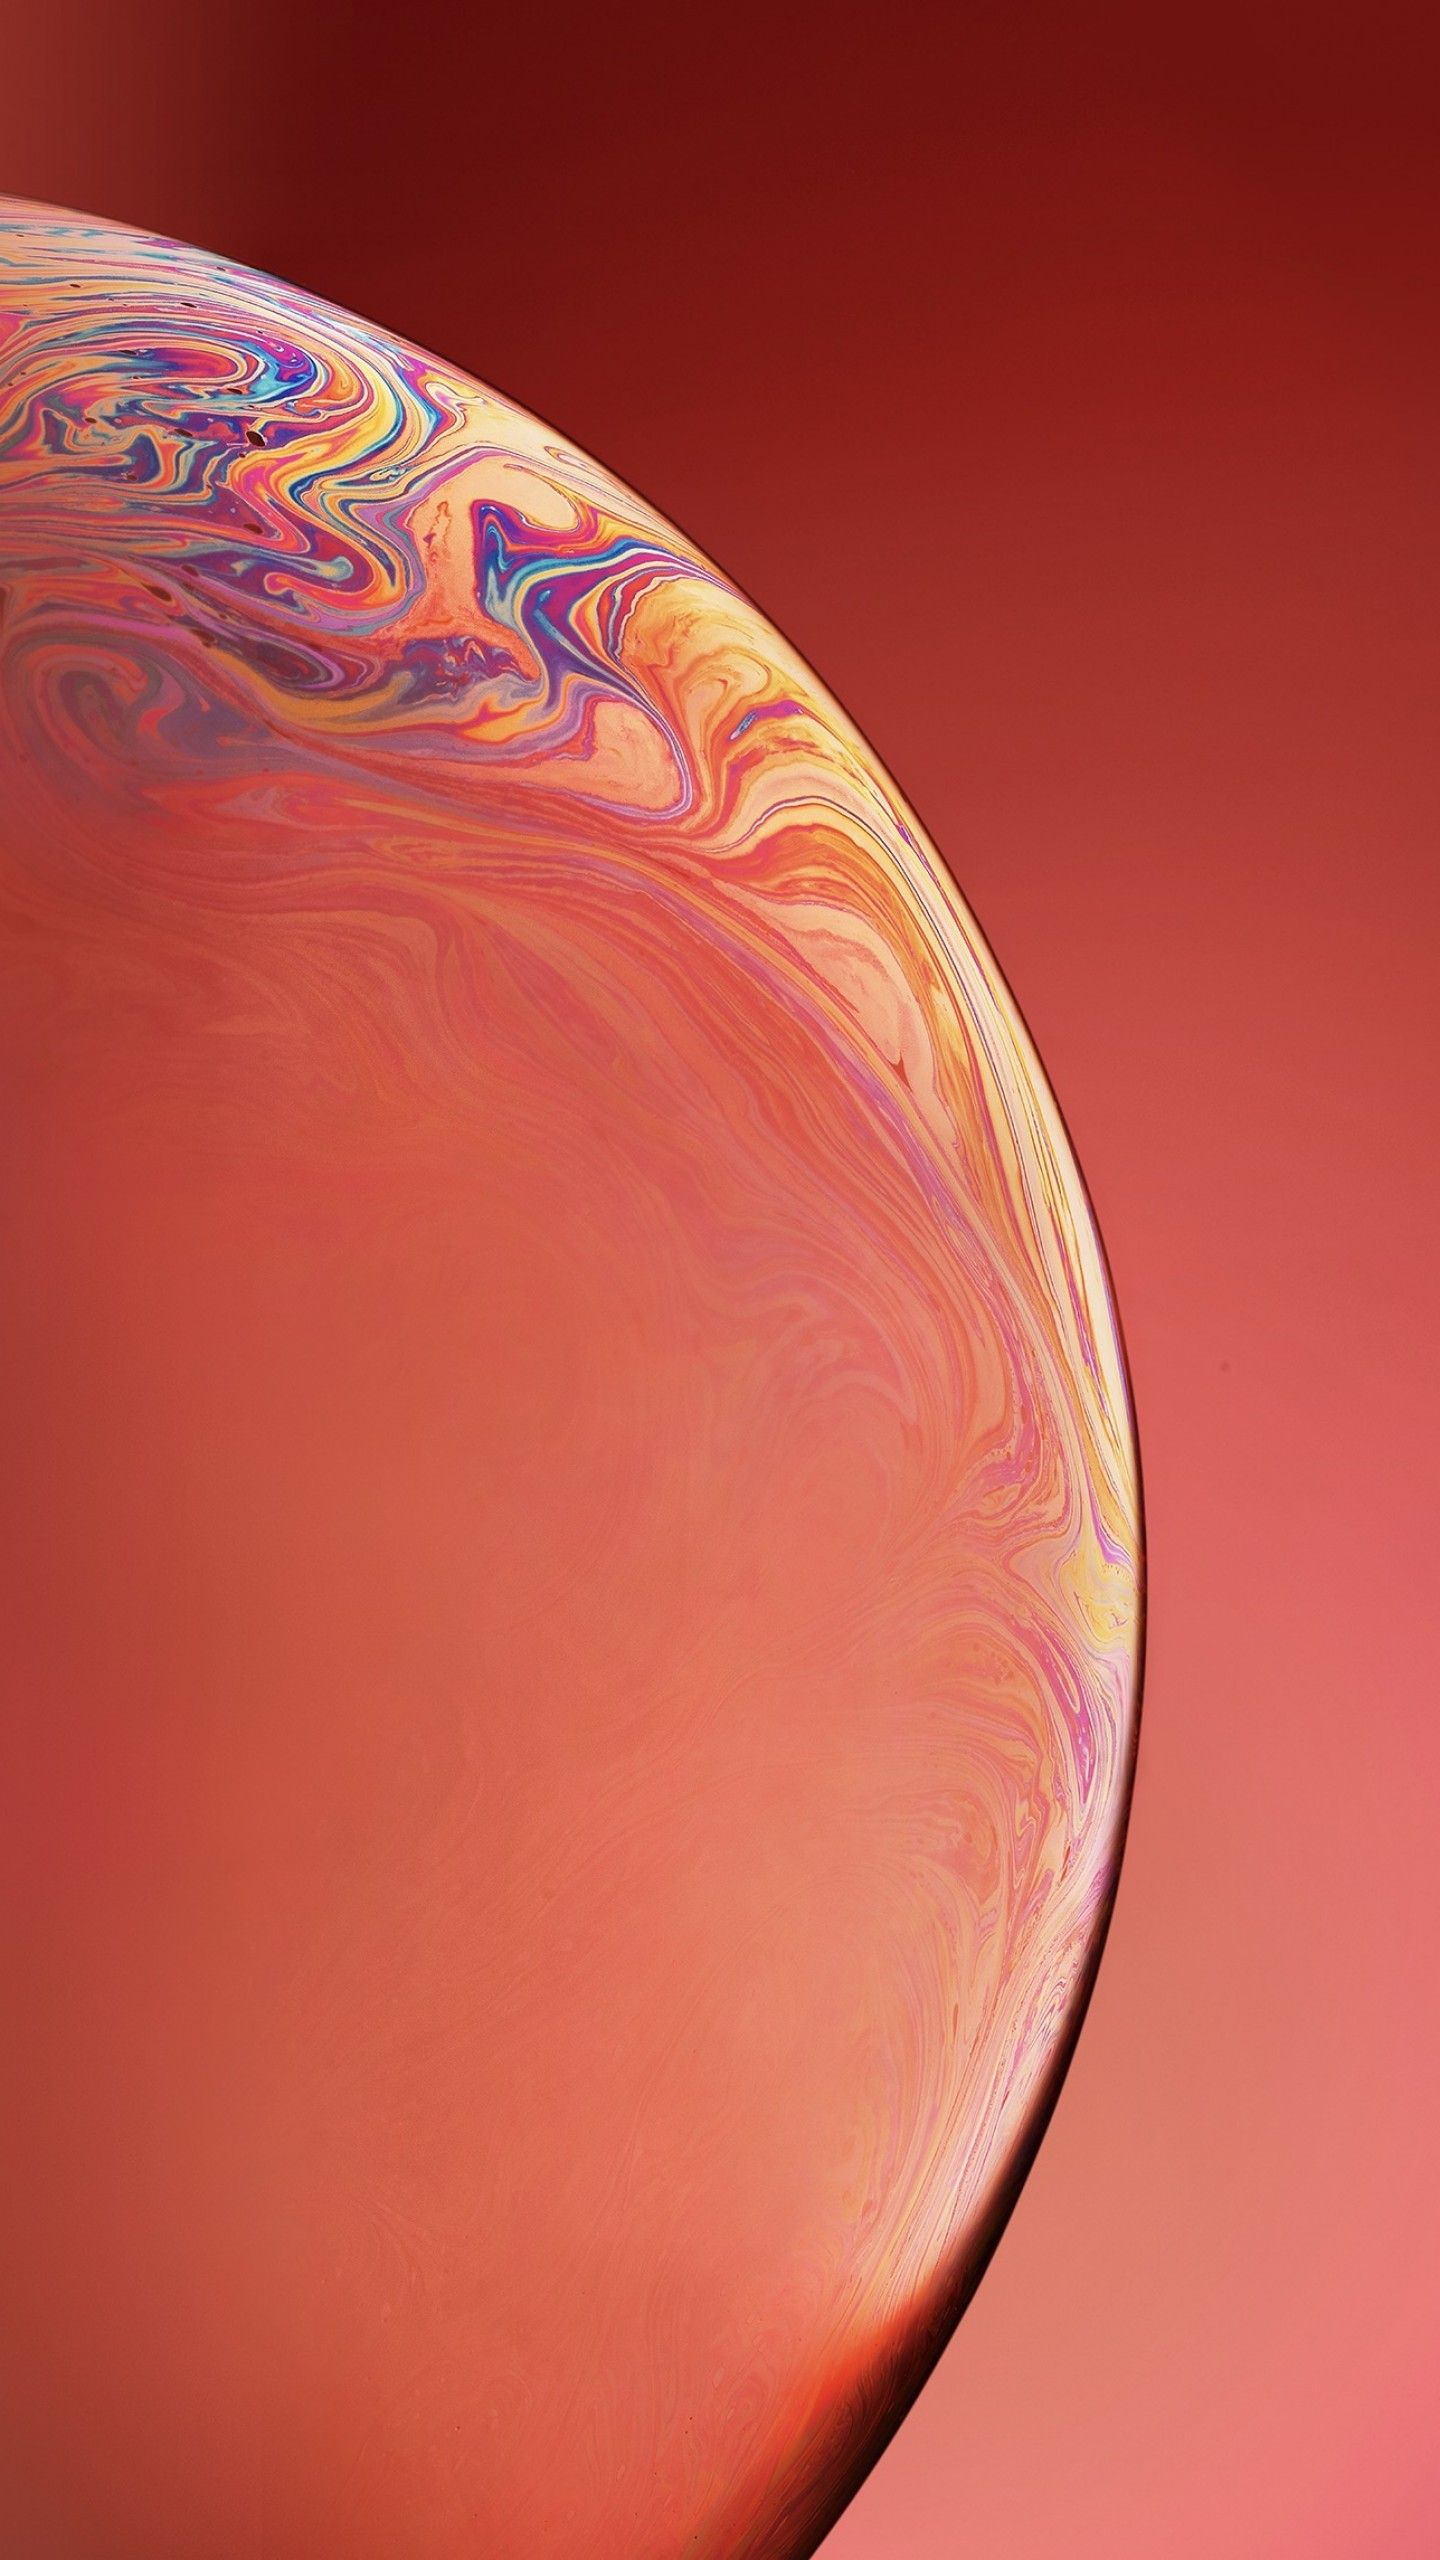 Wallpapers iPhone XR, iPhone XS, iOS 12, OS